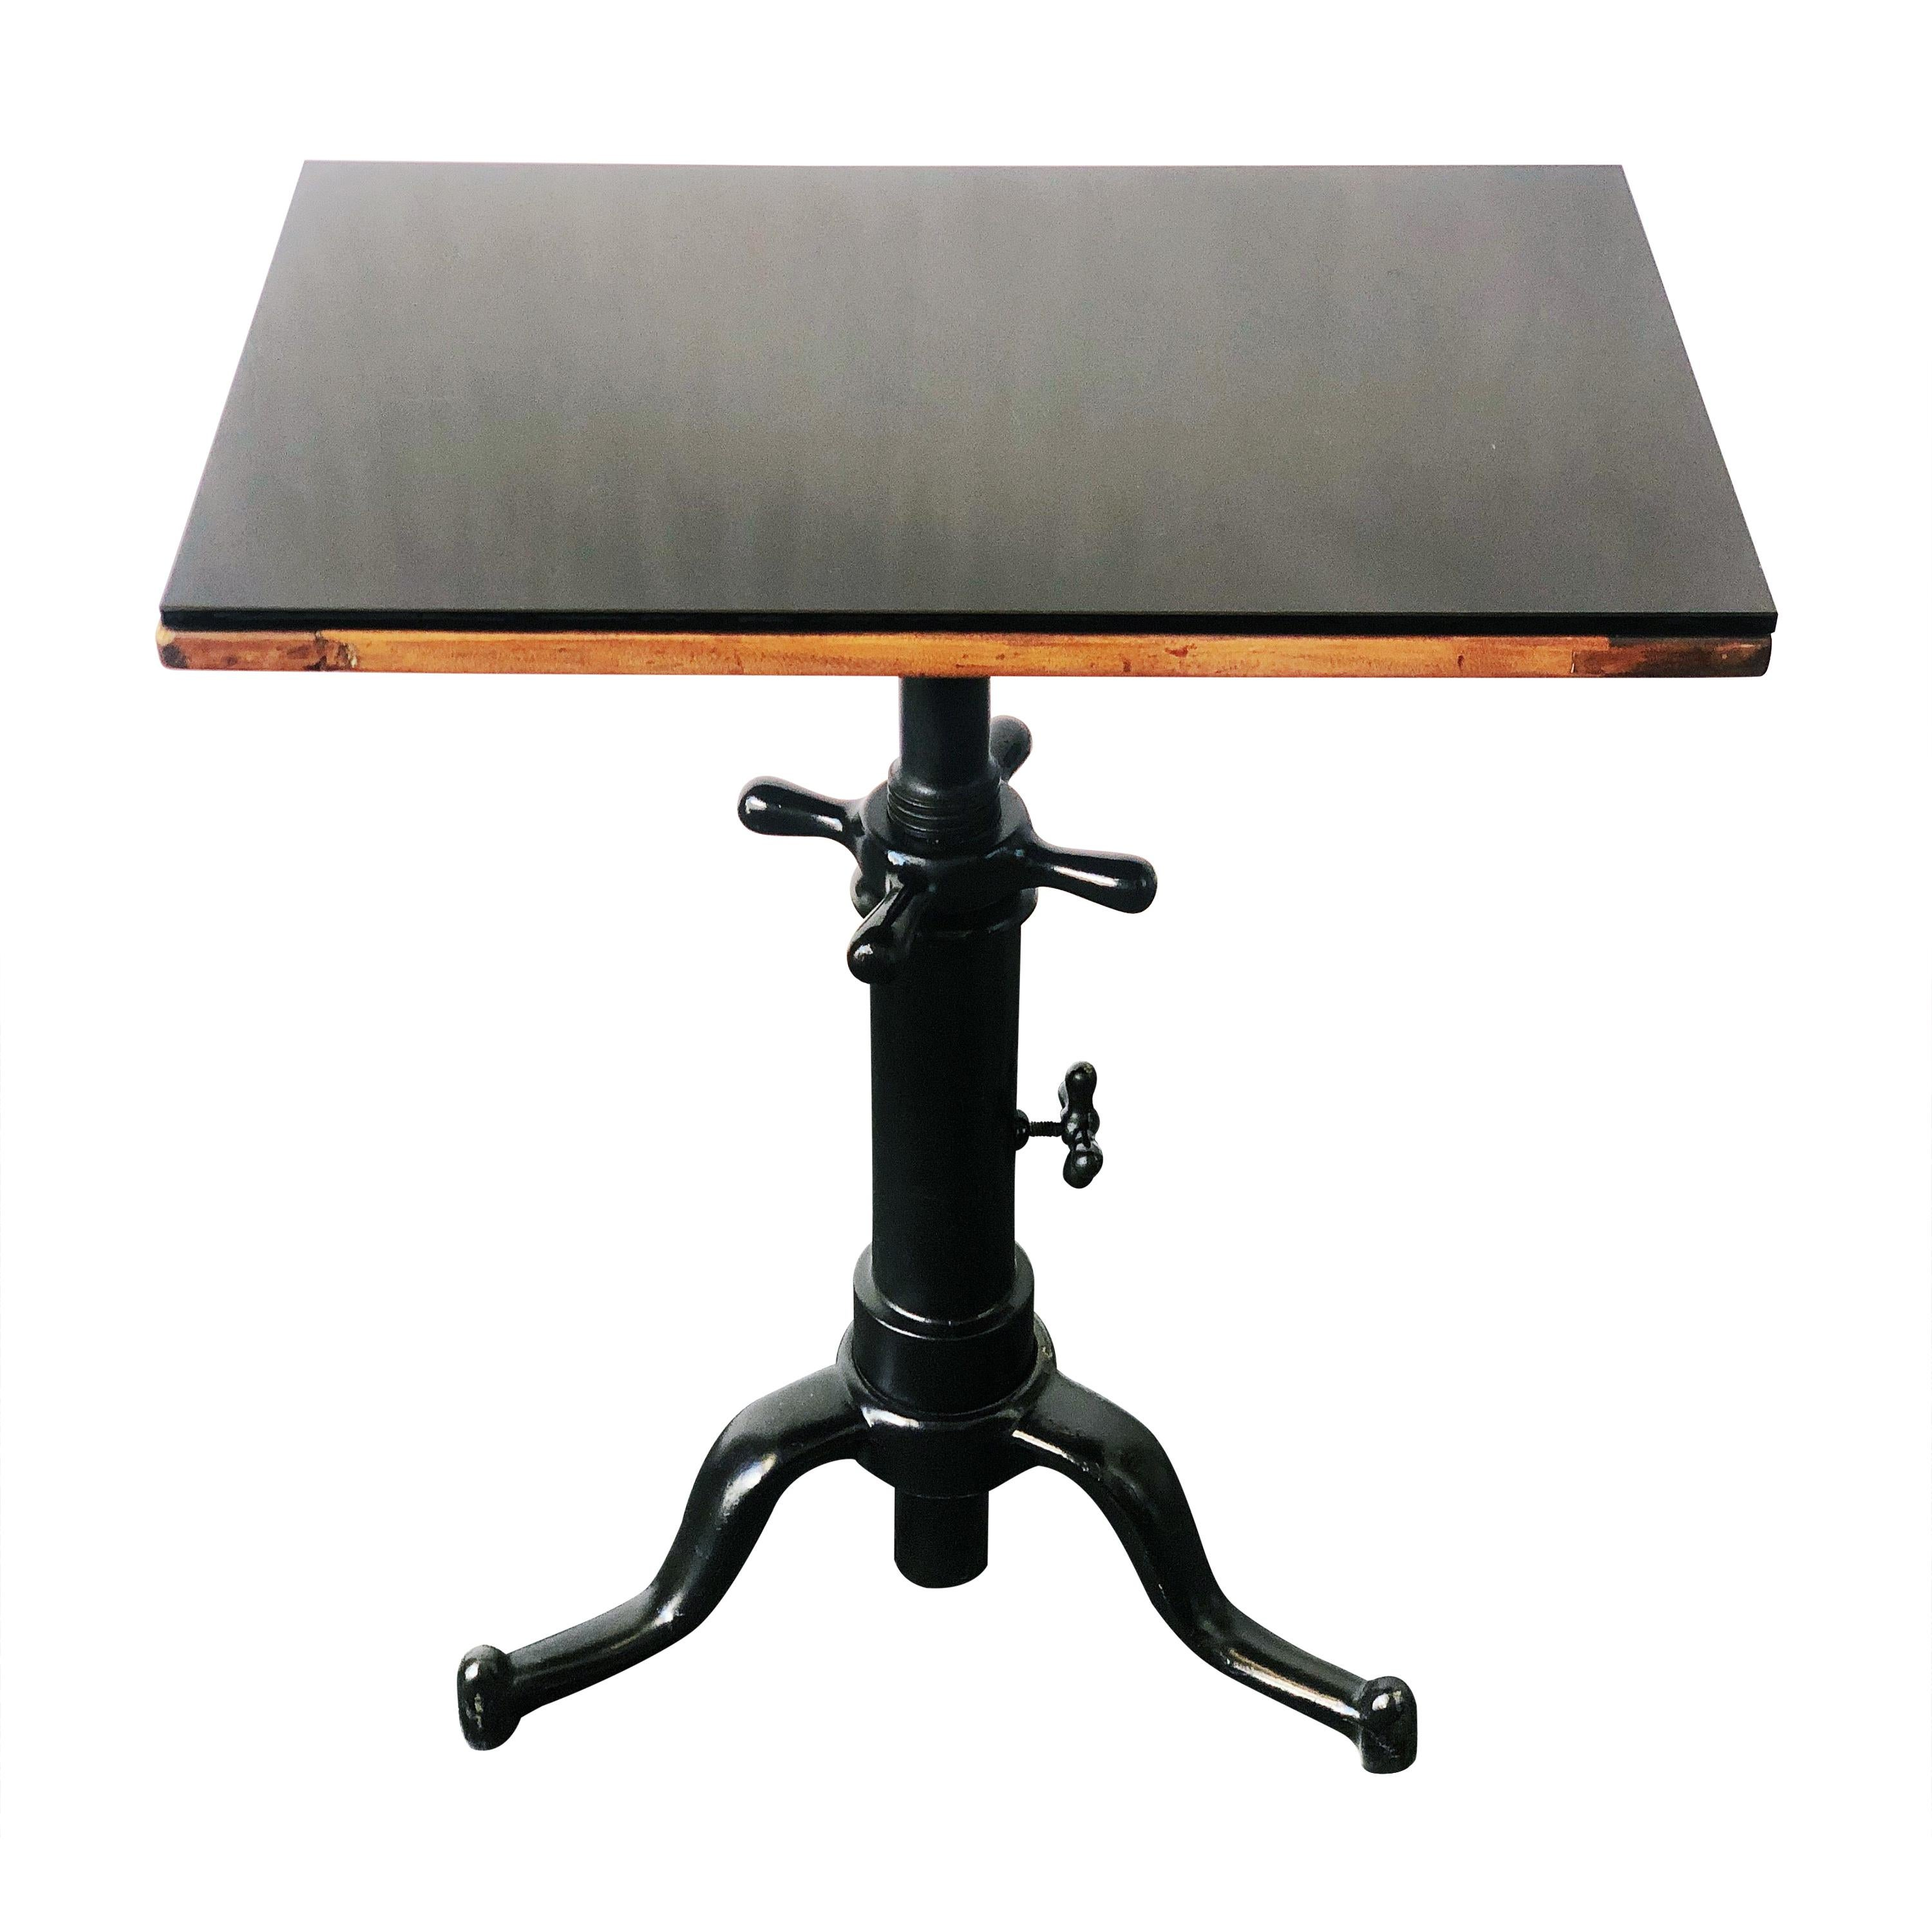 Vintage Optometrist Swivel Table with Black Glass Top and Cast Iron Base, 1940s